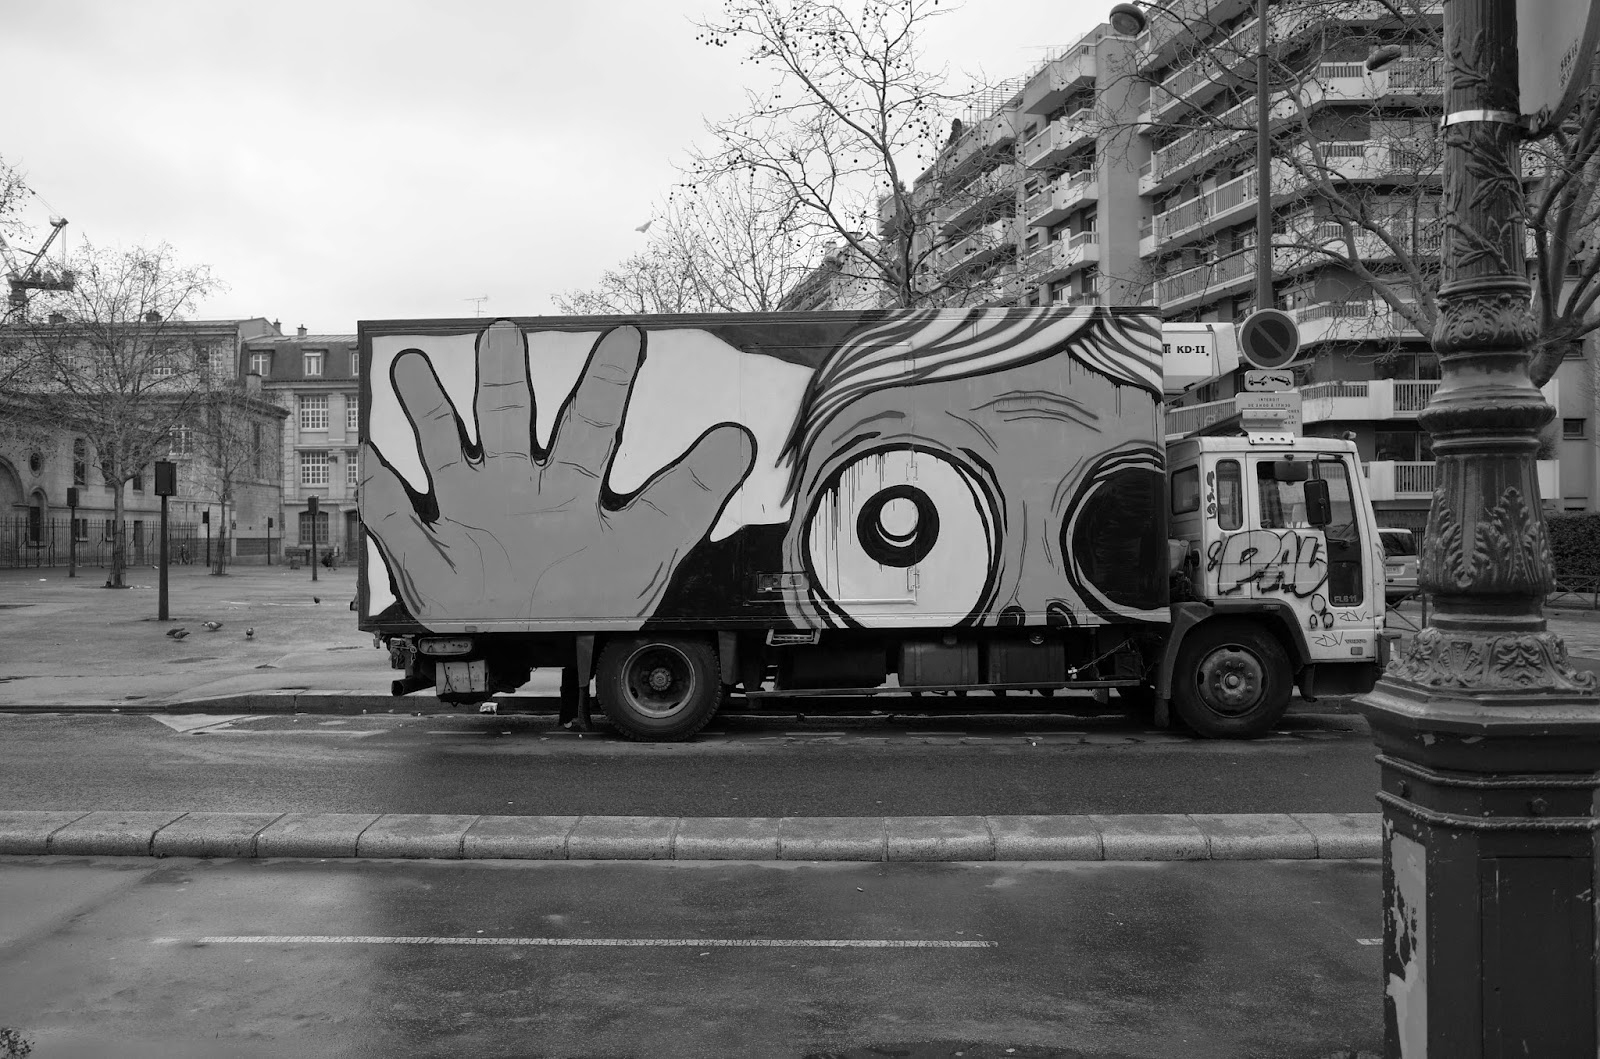 Just before leaving for Brazil where he's taking over the streets of Rio De Janeiro, Mygalo 2000 spent some time on the streets of his hometown, Paris in France.